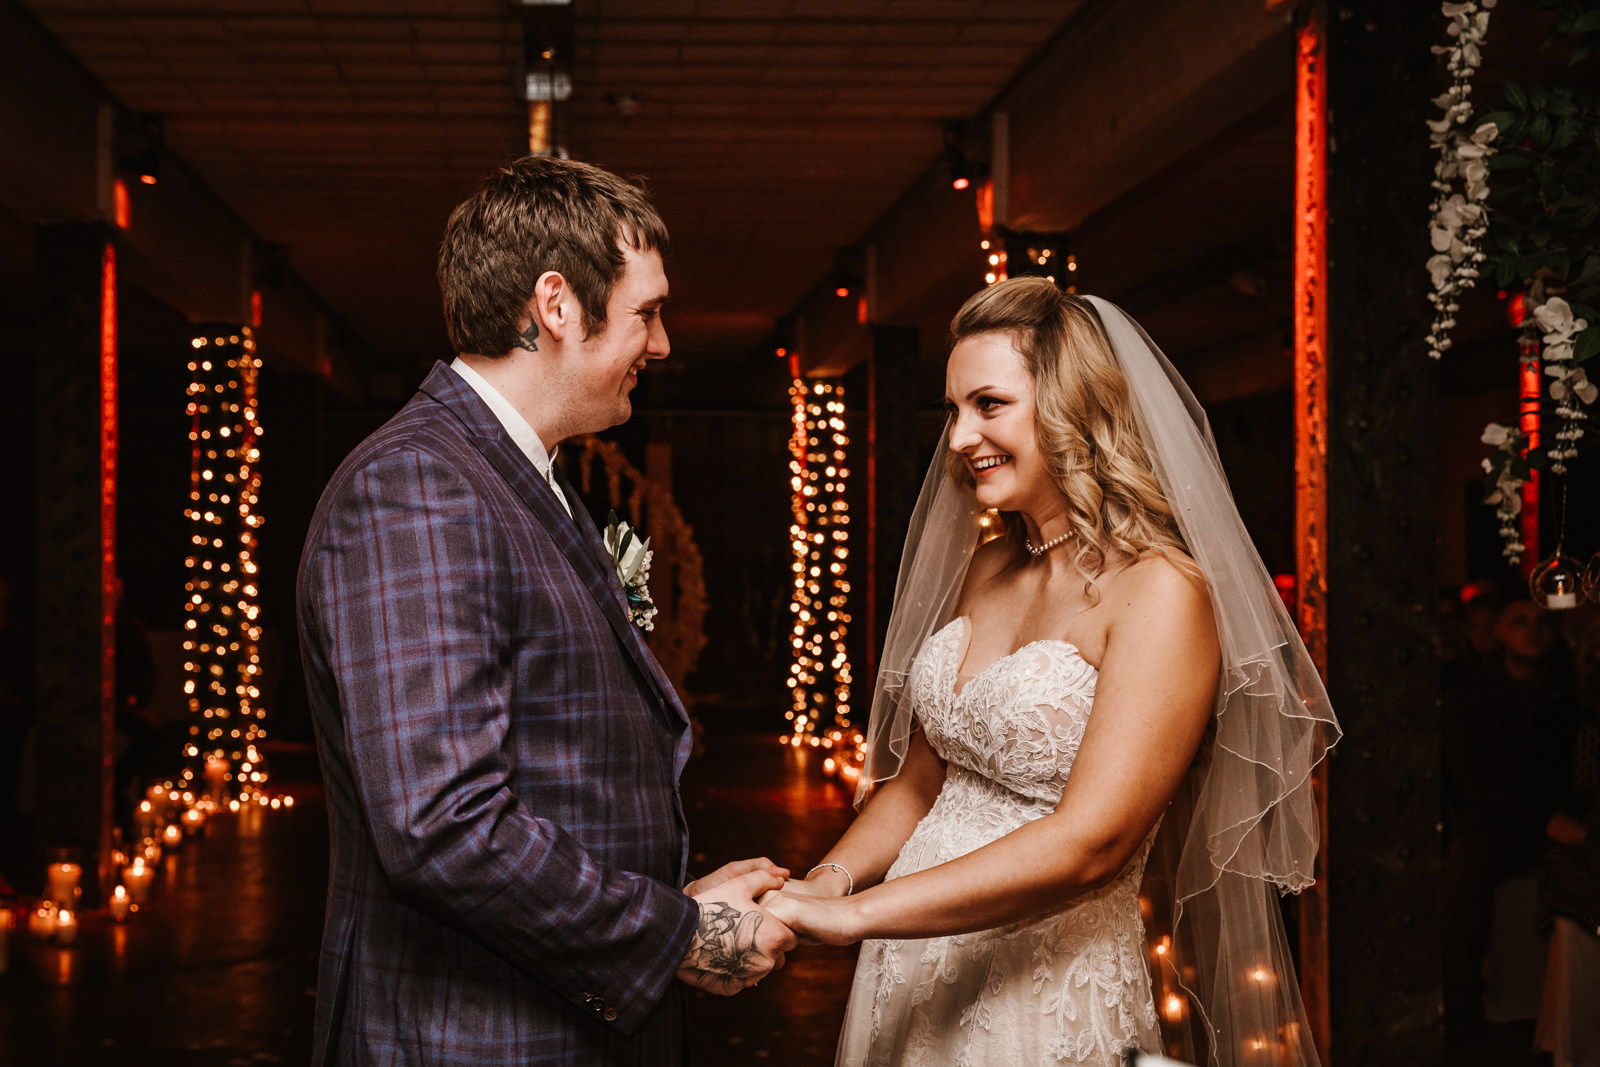 Bride and groom tie the knot at Victoria Warehouse